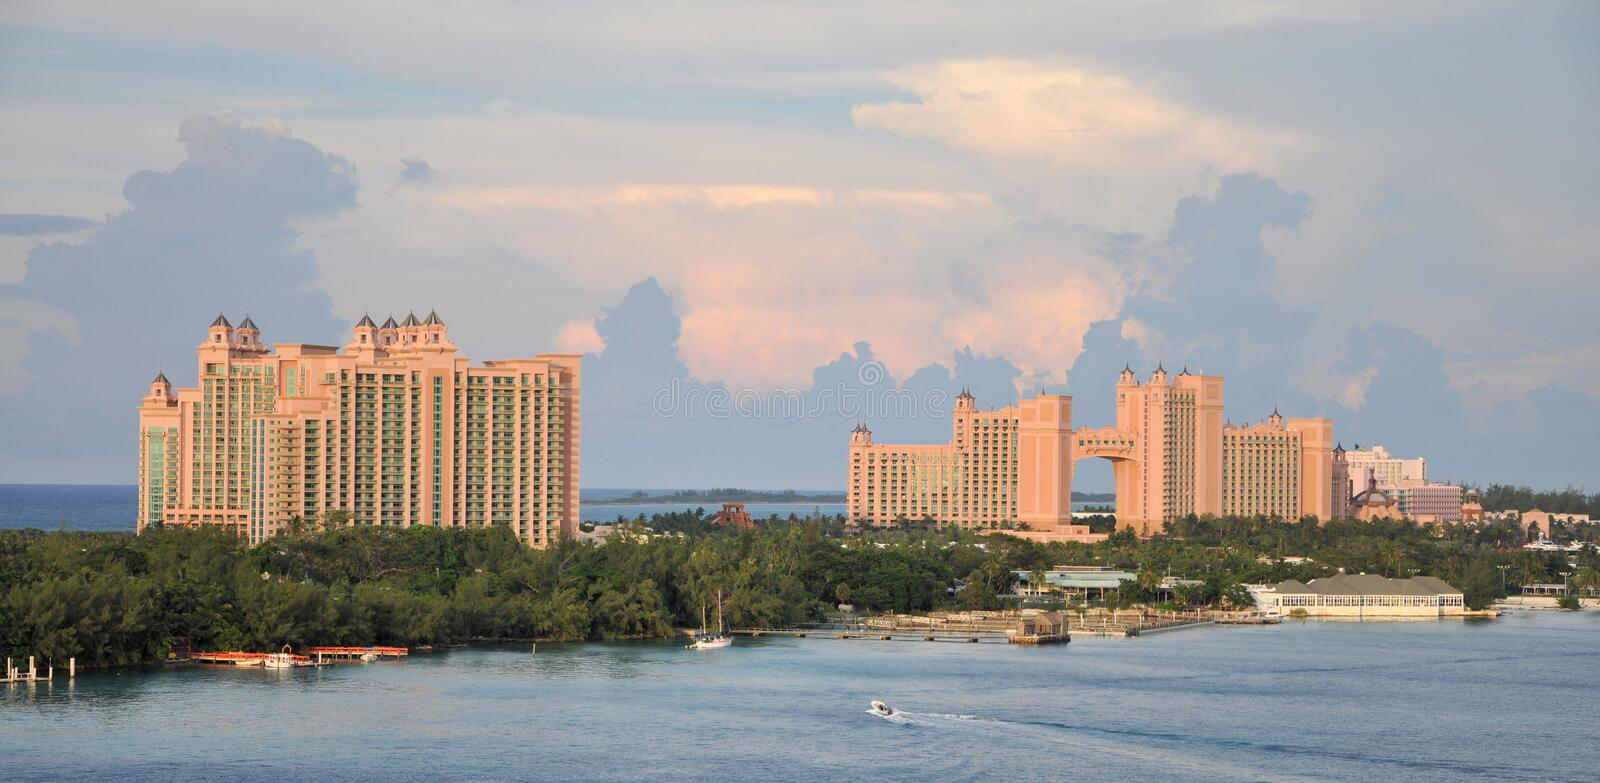 Atlantis Hotel. Image of tha Atlantis Hotel and Casino at Nassau The Bahamas stock photography